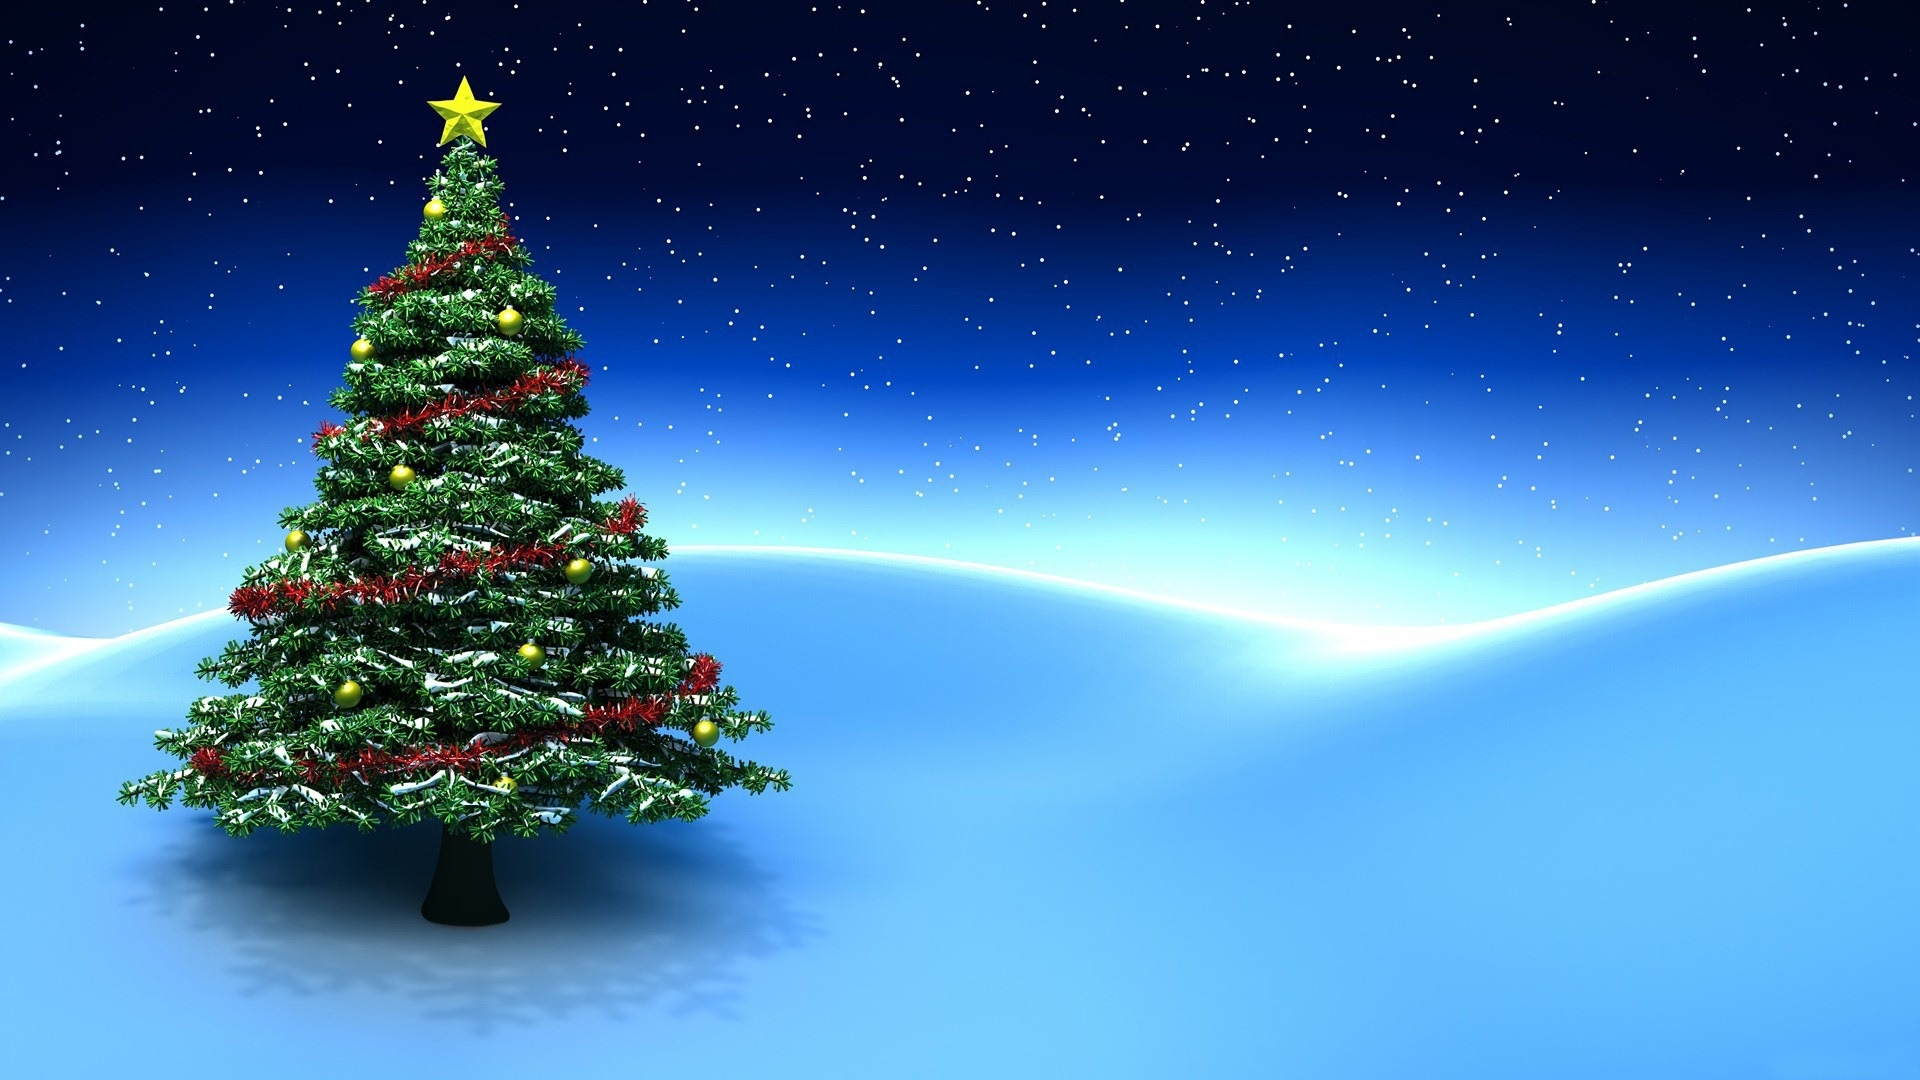 3d Holidays Christmas Wallpapers Inside Christmas Wallpaper - Merry Christmas Wishes For Colleagues , HD Wallpaper & Backgrounds